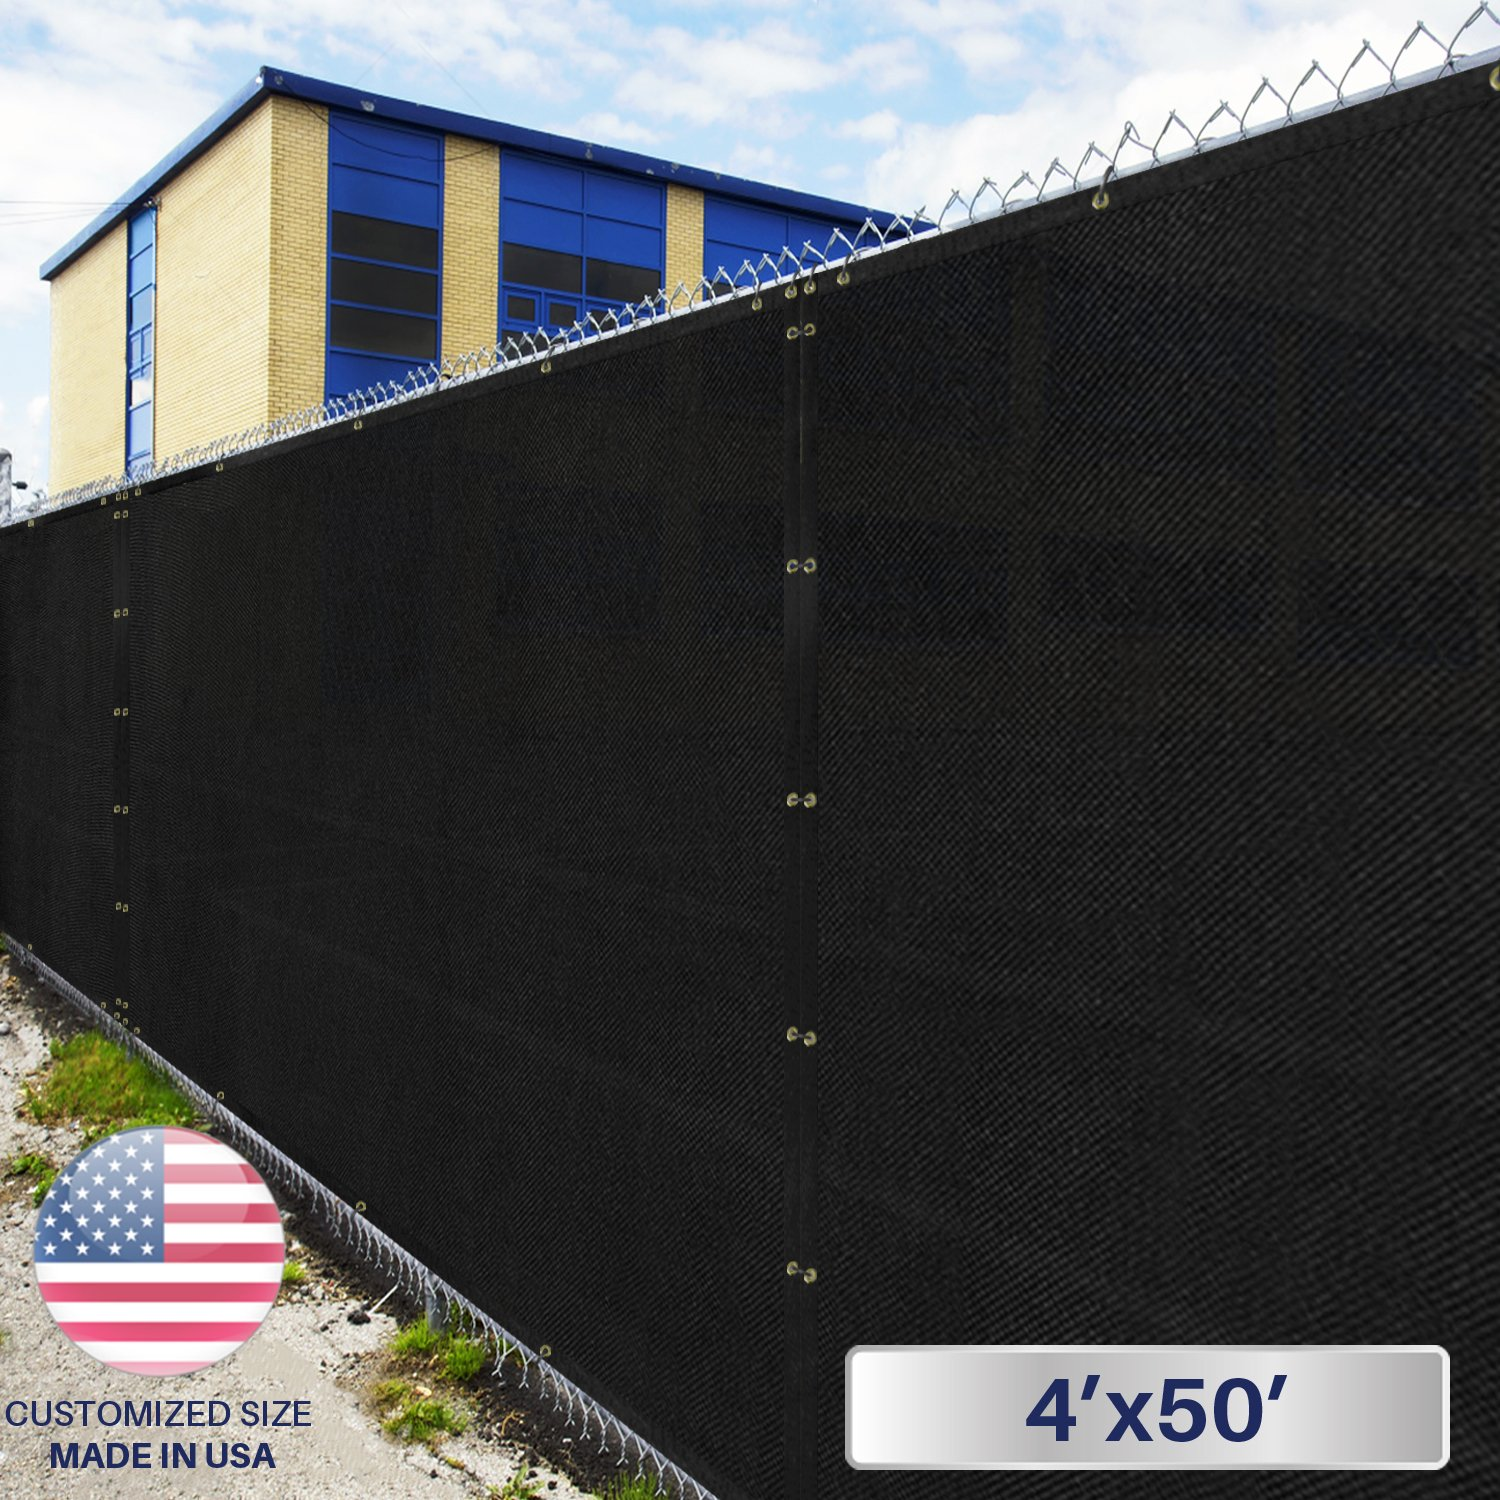 Windscreen4less Heavy Duty Privacy Screen Fence in Color Solid Black 4' x 50' Brass Grommets w/3-Year Warranty 150 GSM (Customized